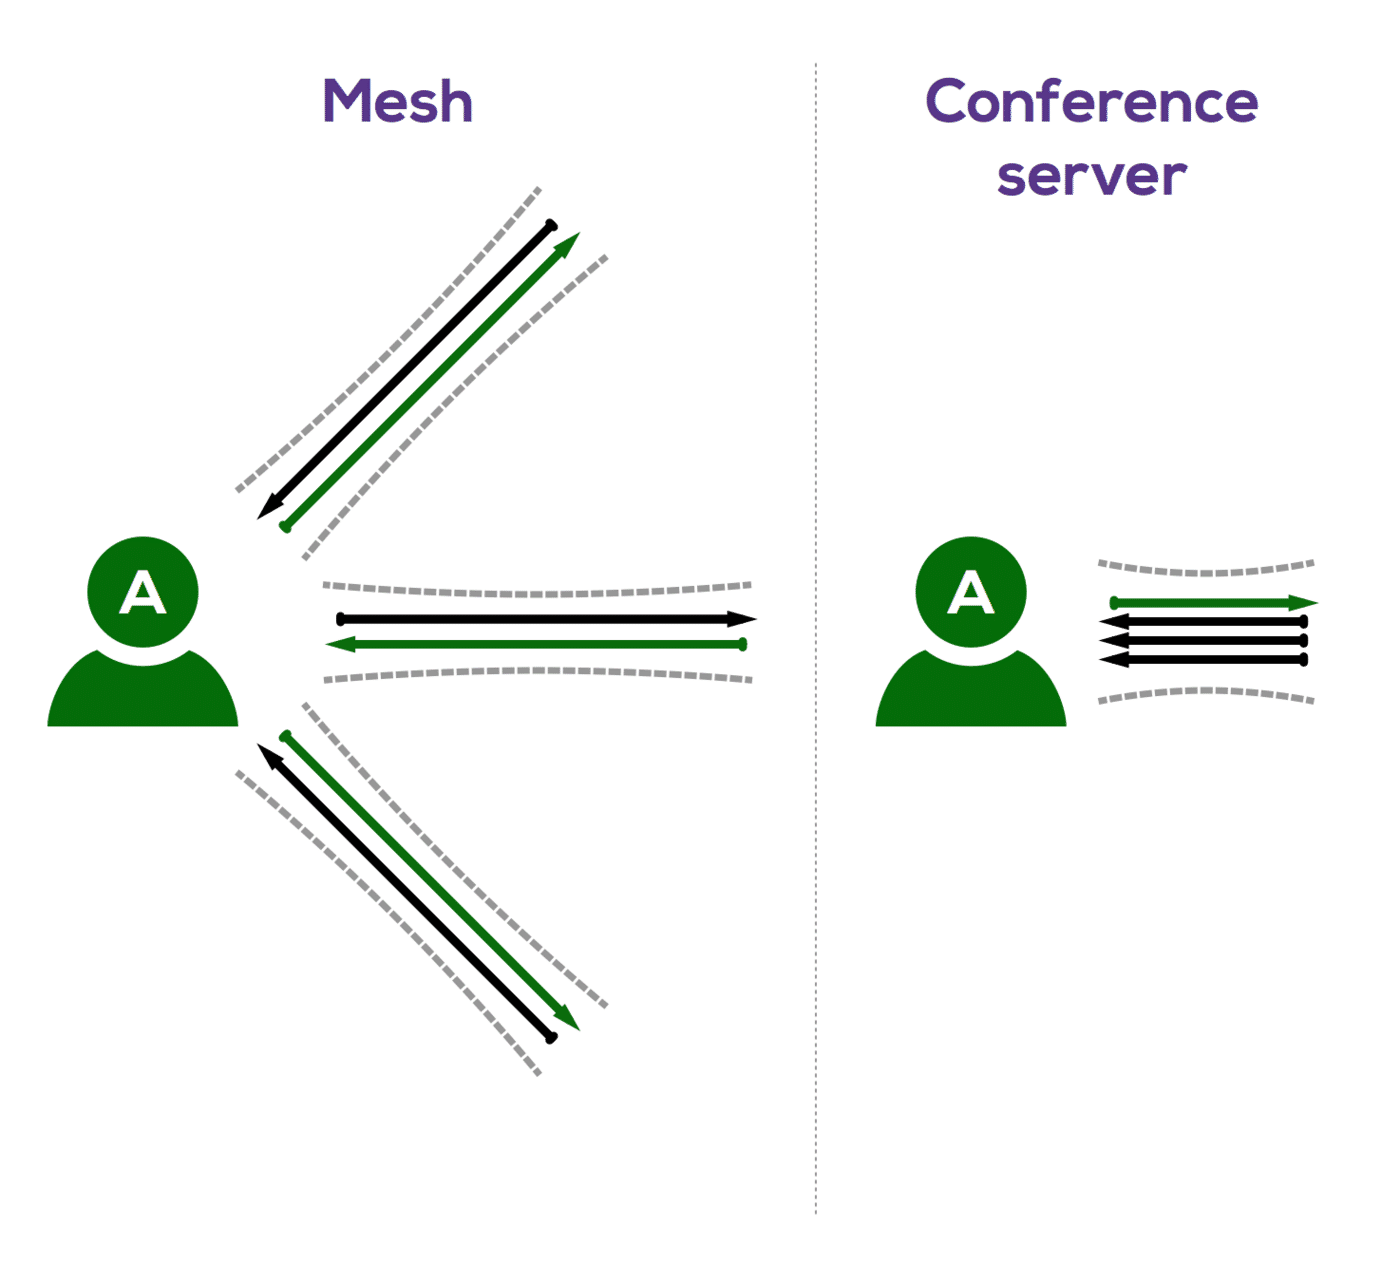 Connections viewed by a single participant.